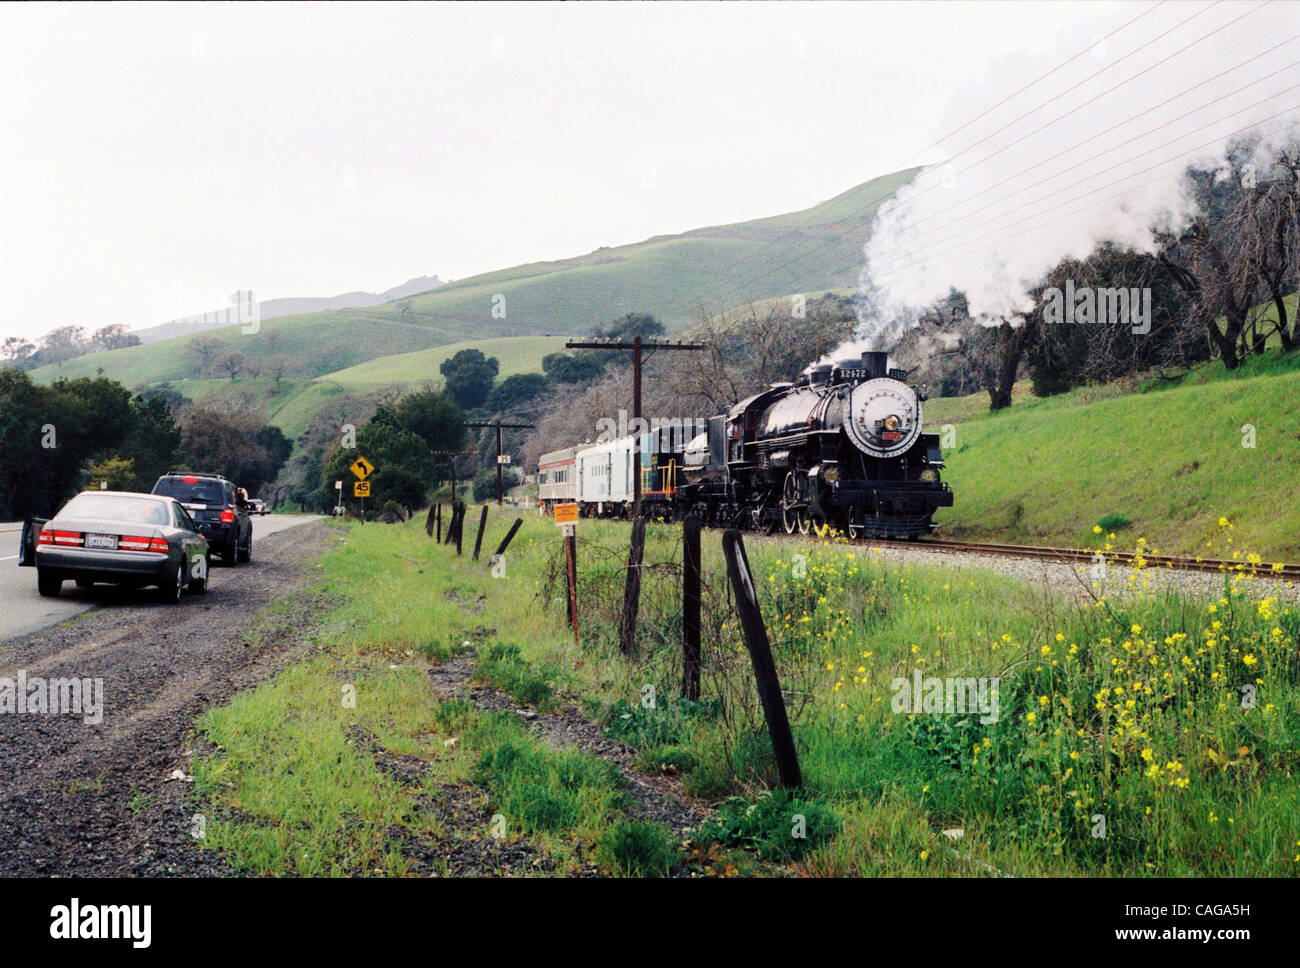 Niles Canyon Stock Photos & Niles Canyon Stock Images - Alamy